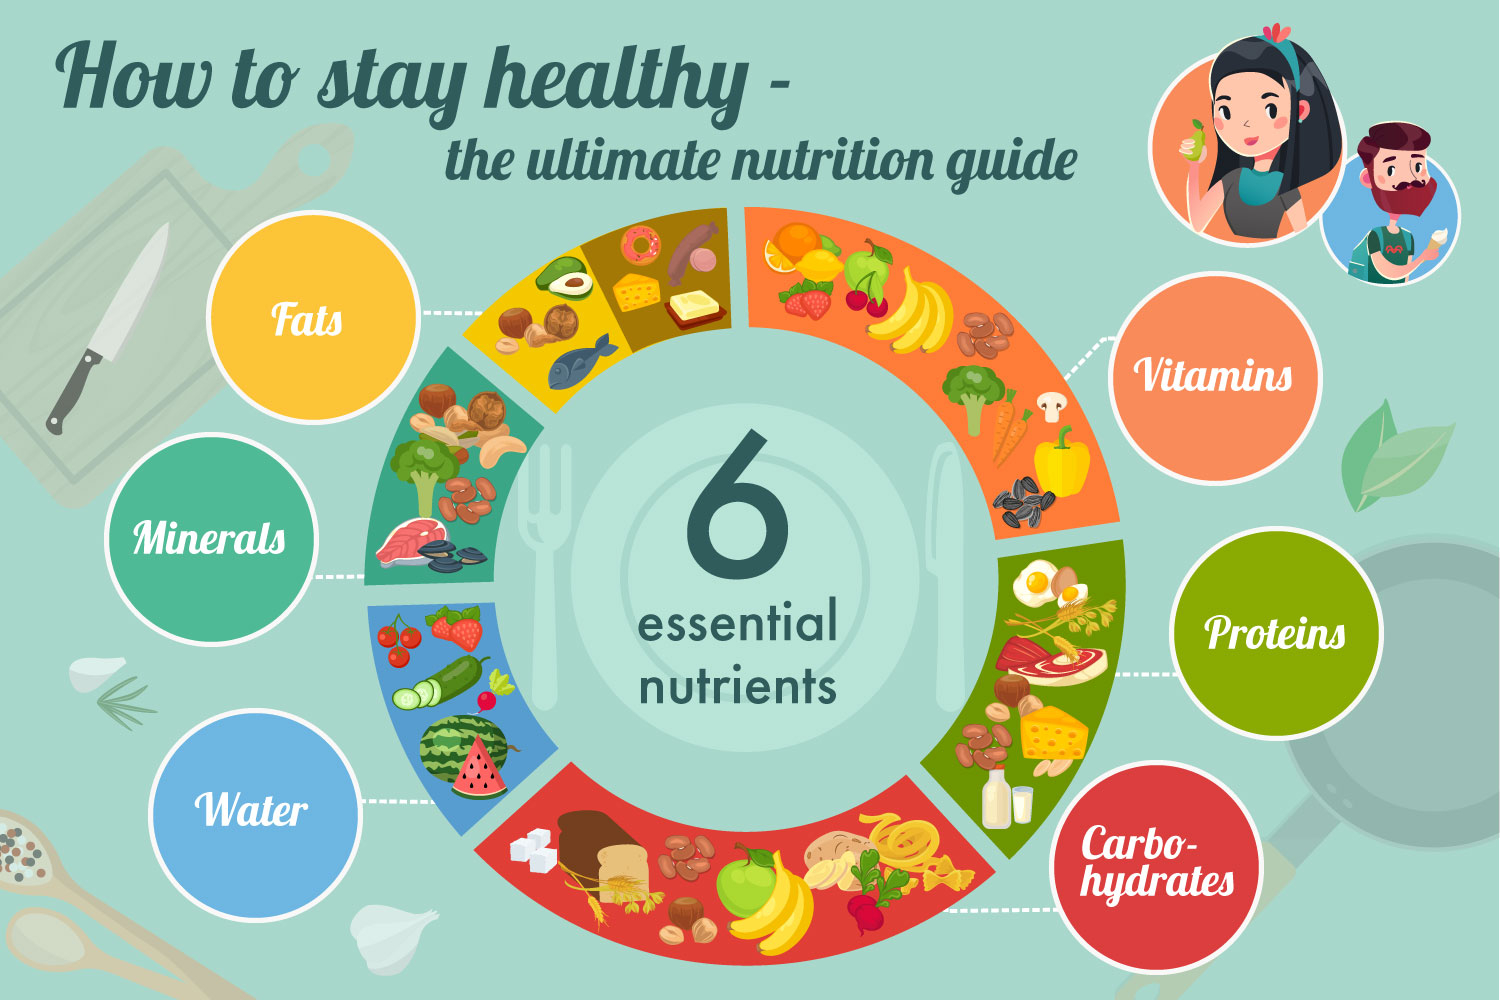 an overview of the basic nutrients needed in our body Energy is not a nutrient but, kilojoules (food energy) are important for providing   vitamins and minerals are also essential nutrients for the body, but they are not.